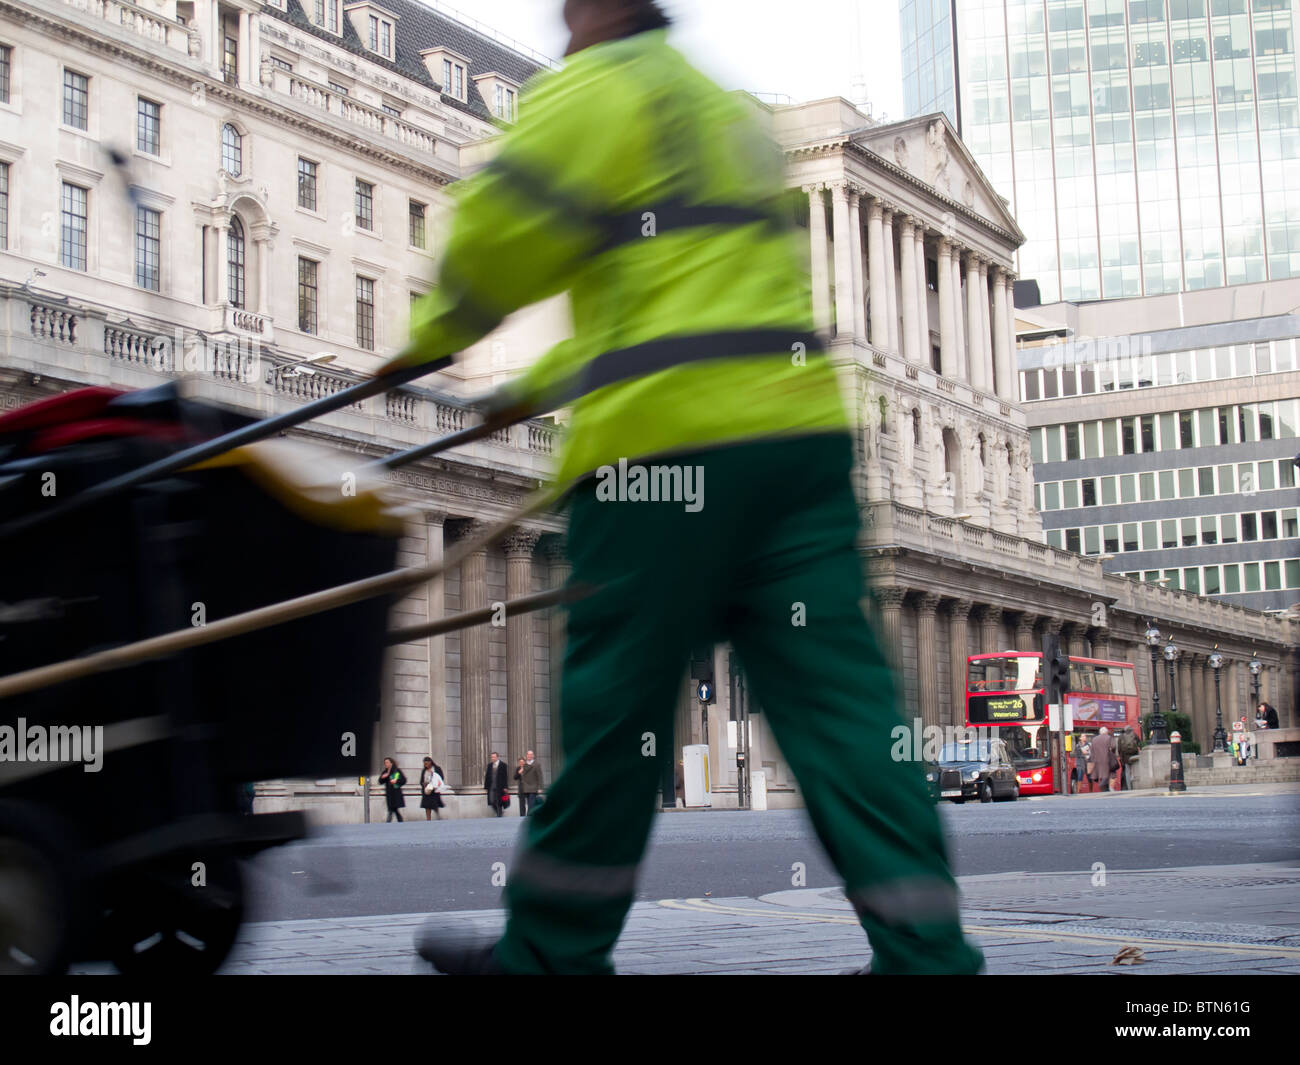 Street cleaner in the City of London - outside Bank of England - blurred motion - Stock Image